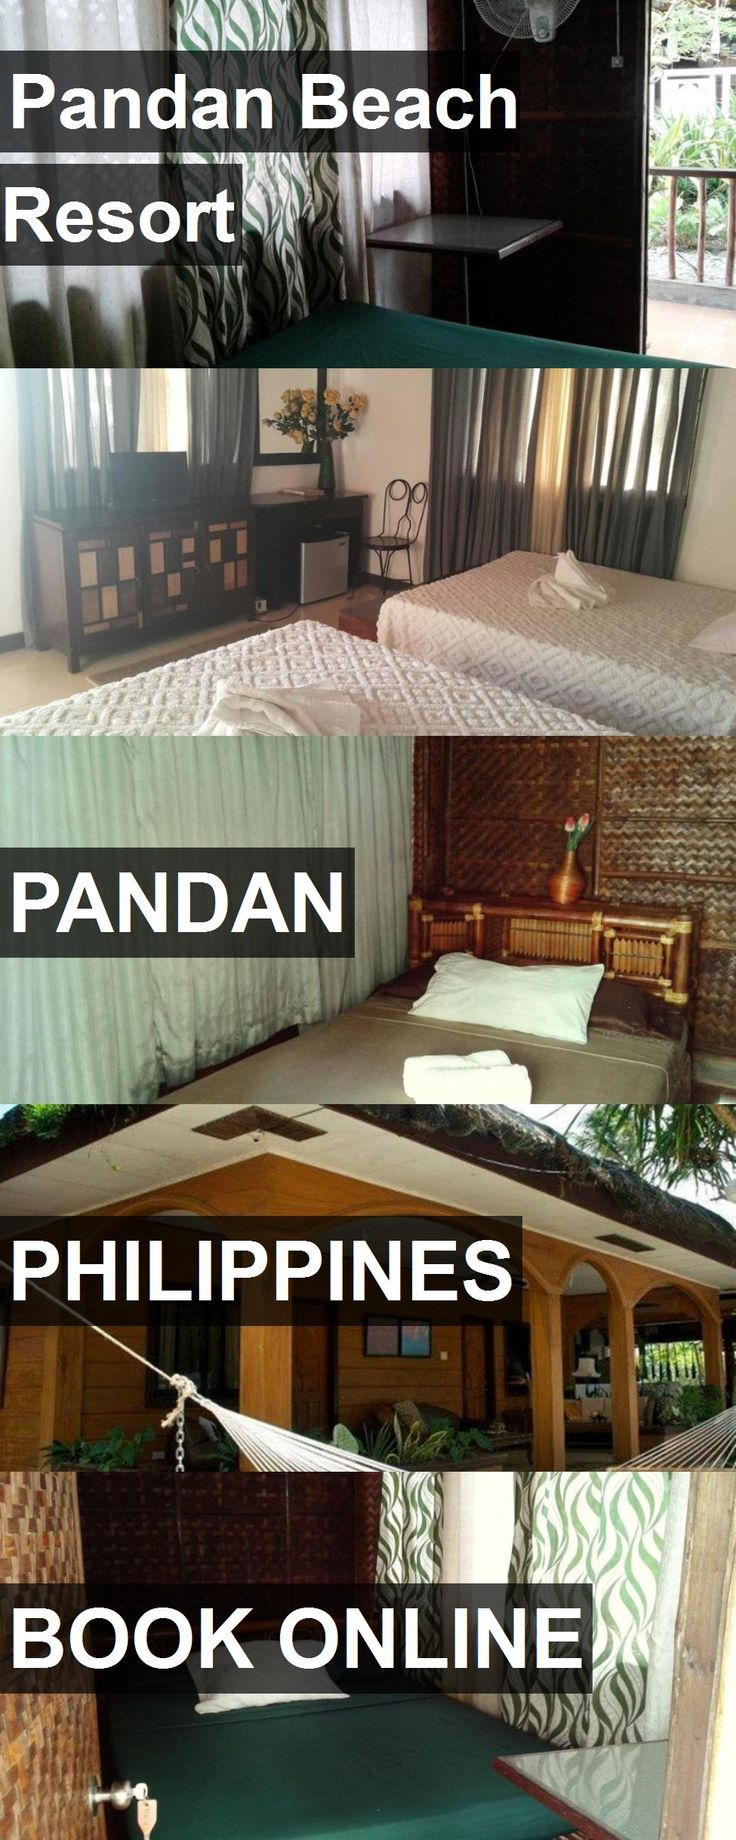 Hotel Pandan Beach Resort in Pandan, Philippines. For more information, photos, reviews and best prices please follow the link. #Philippines #Pandan #travel #vacation #hotel